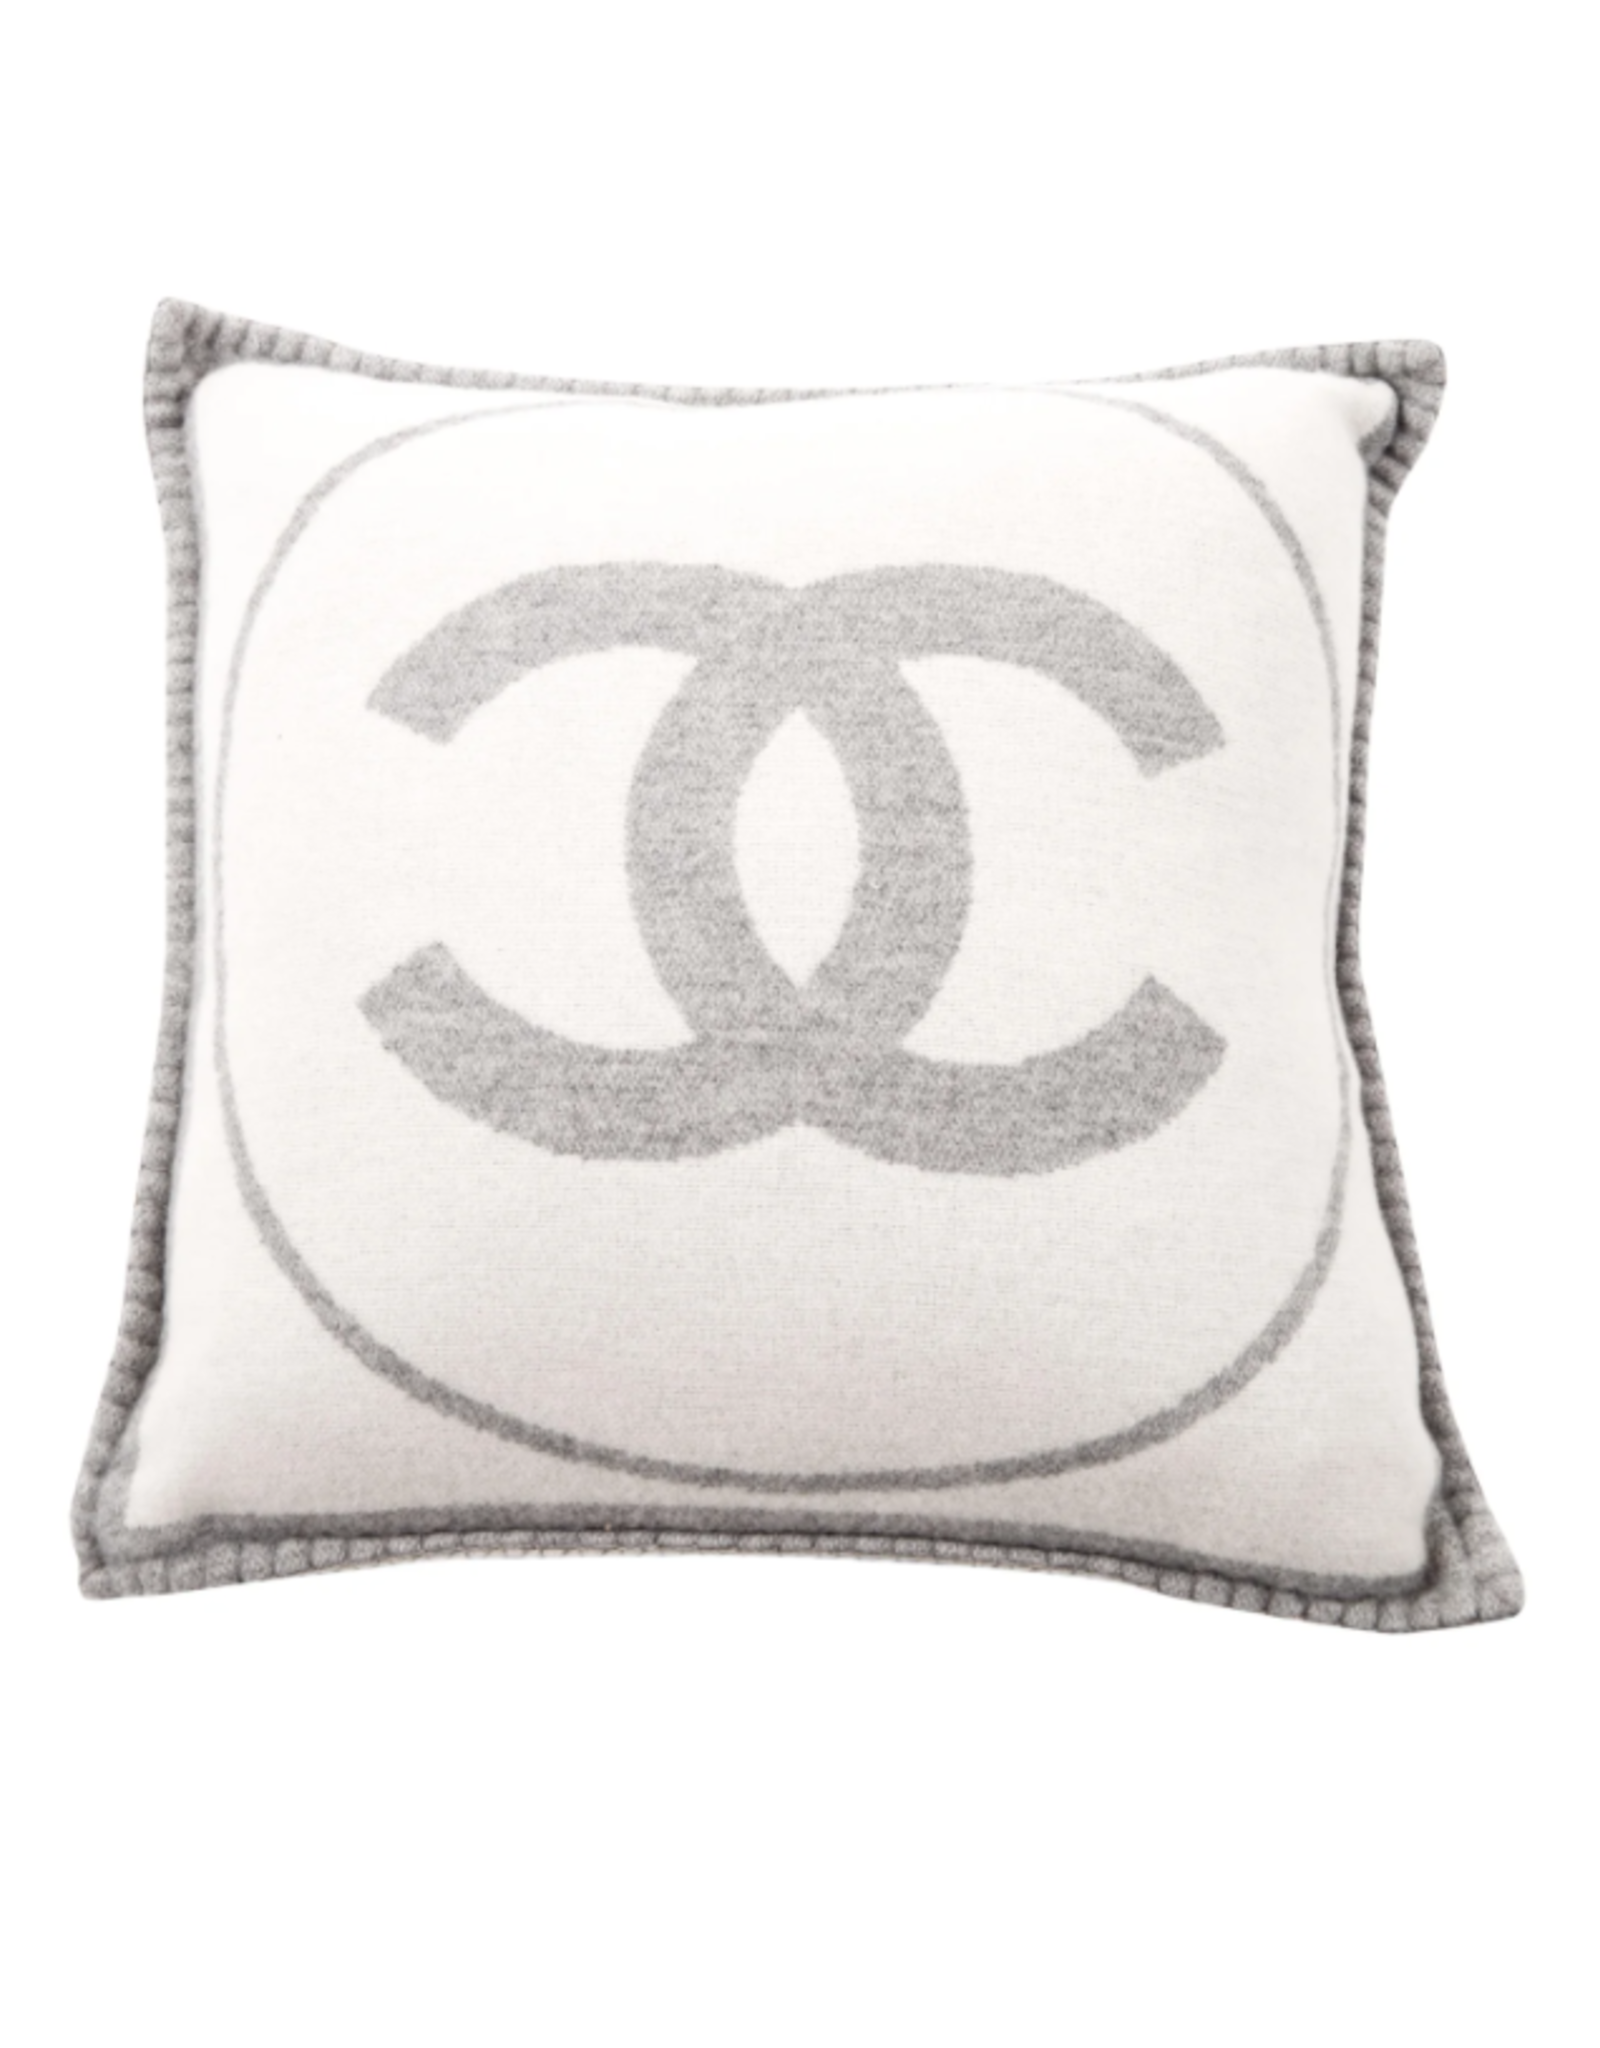 Wyld Blue Home Chanel CC Monogram Logo Large Throw Pillow